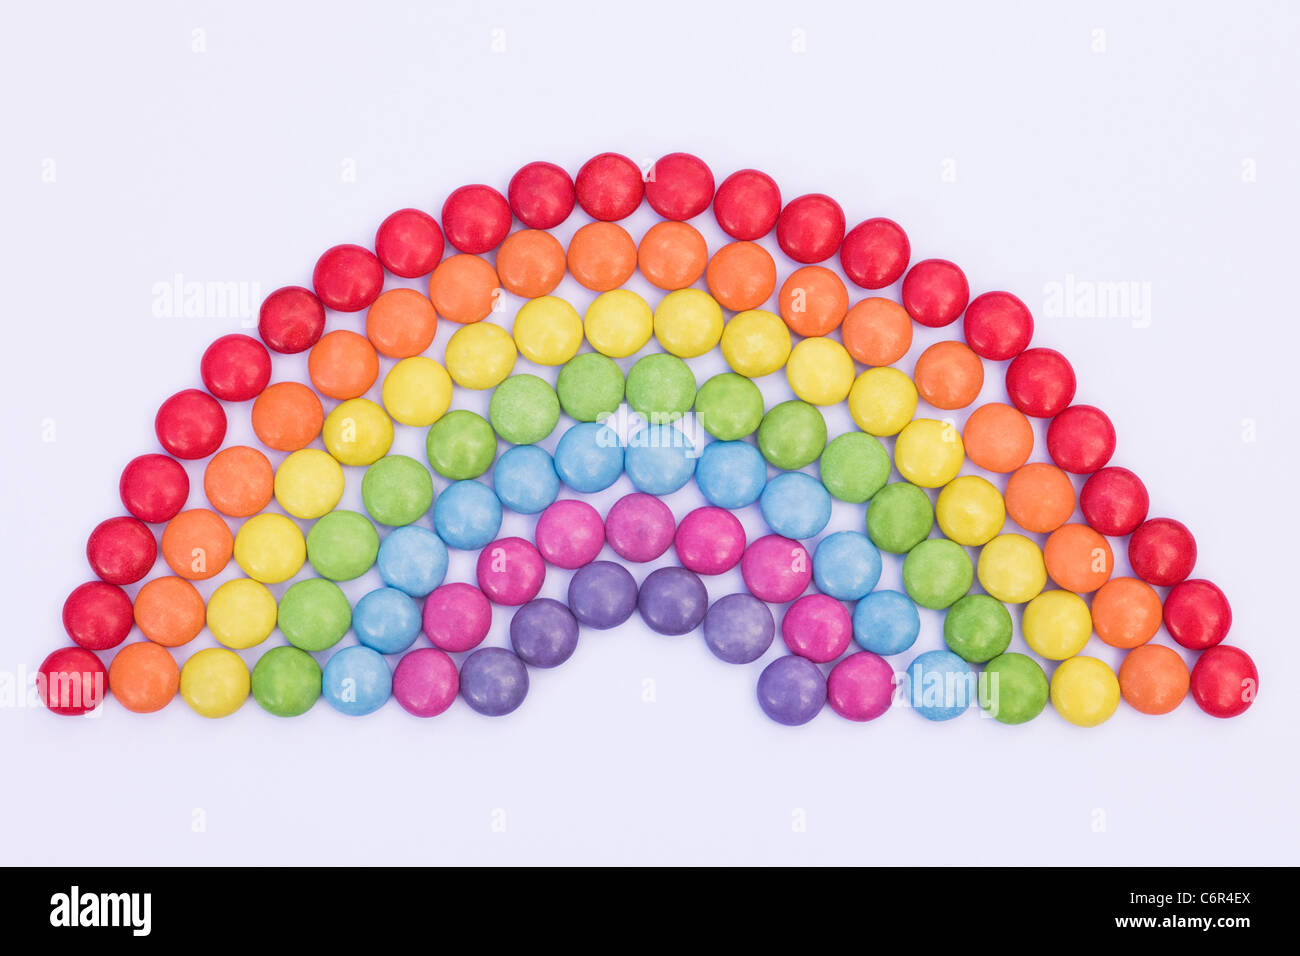 Rainbow smartie pattern on a white background. - Stock Image